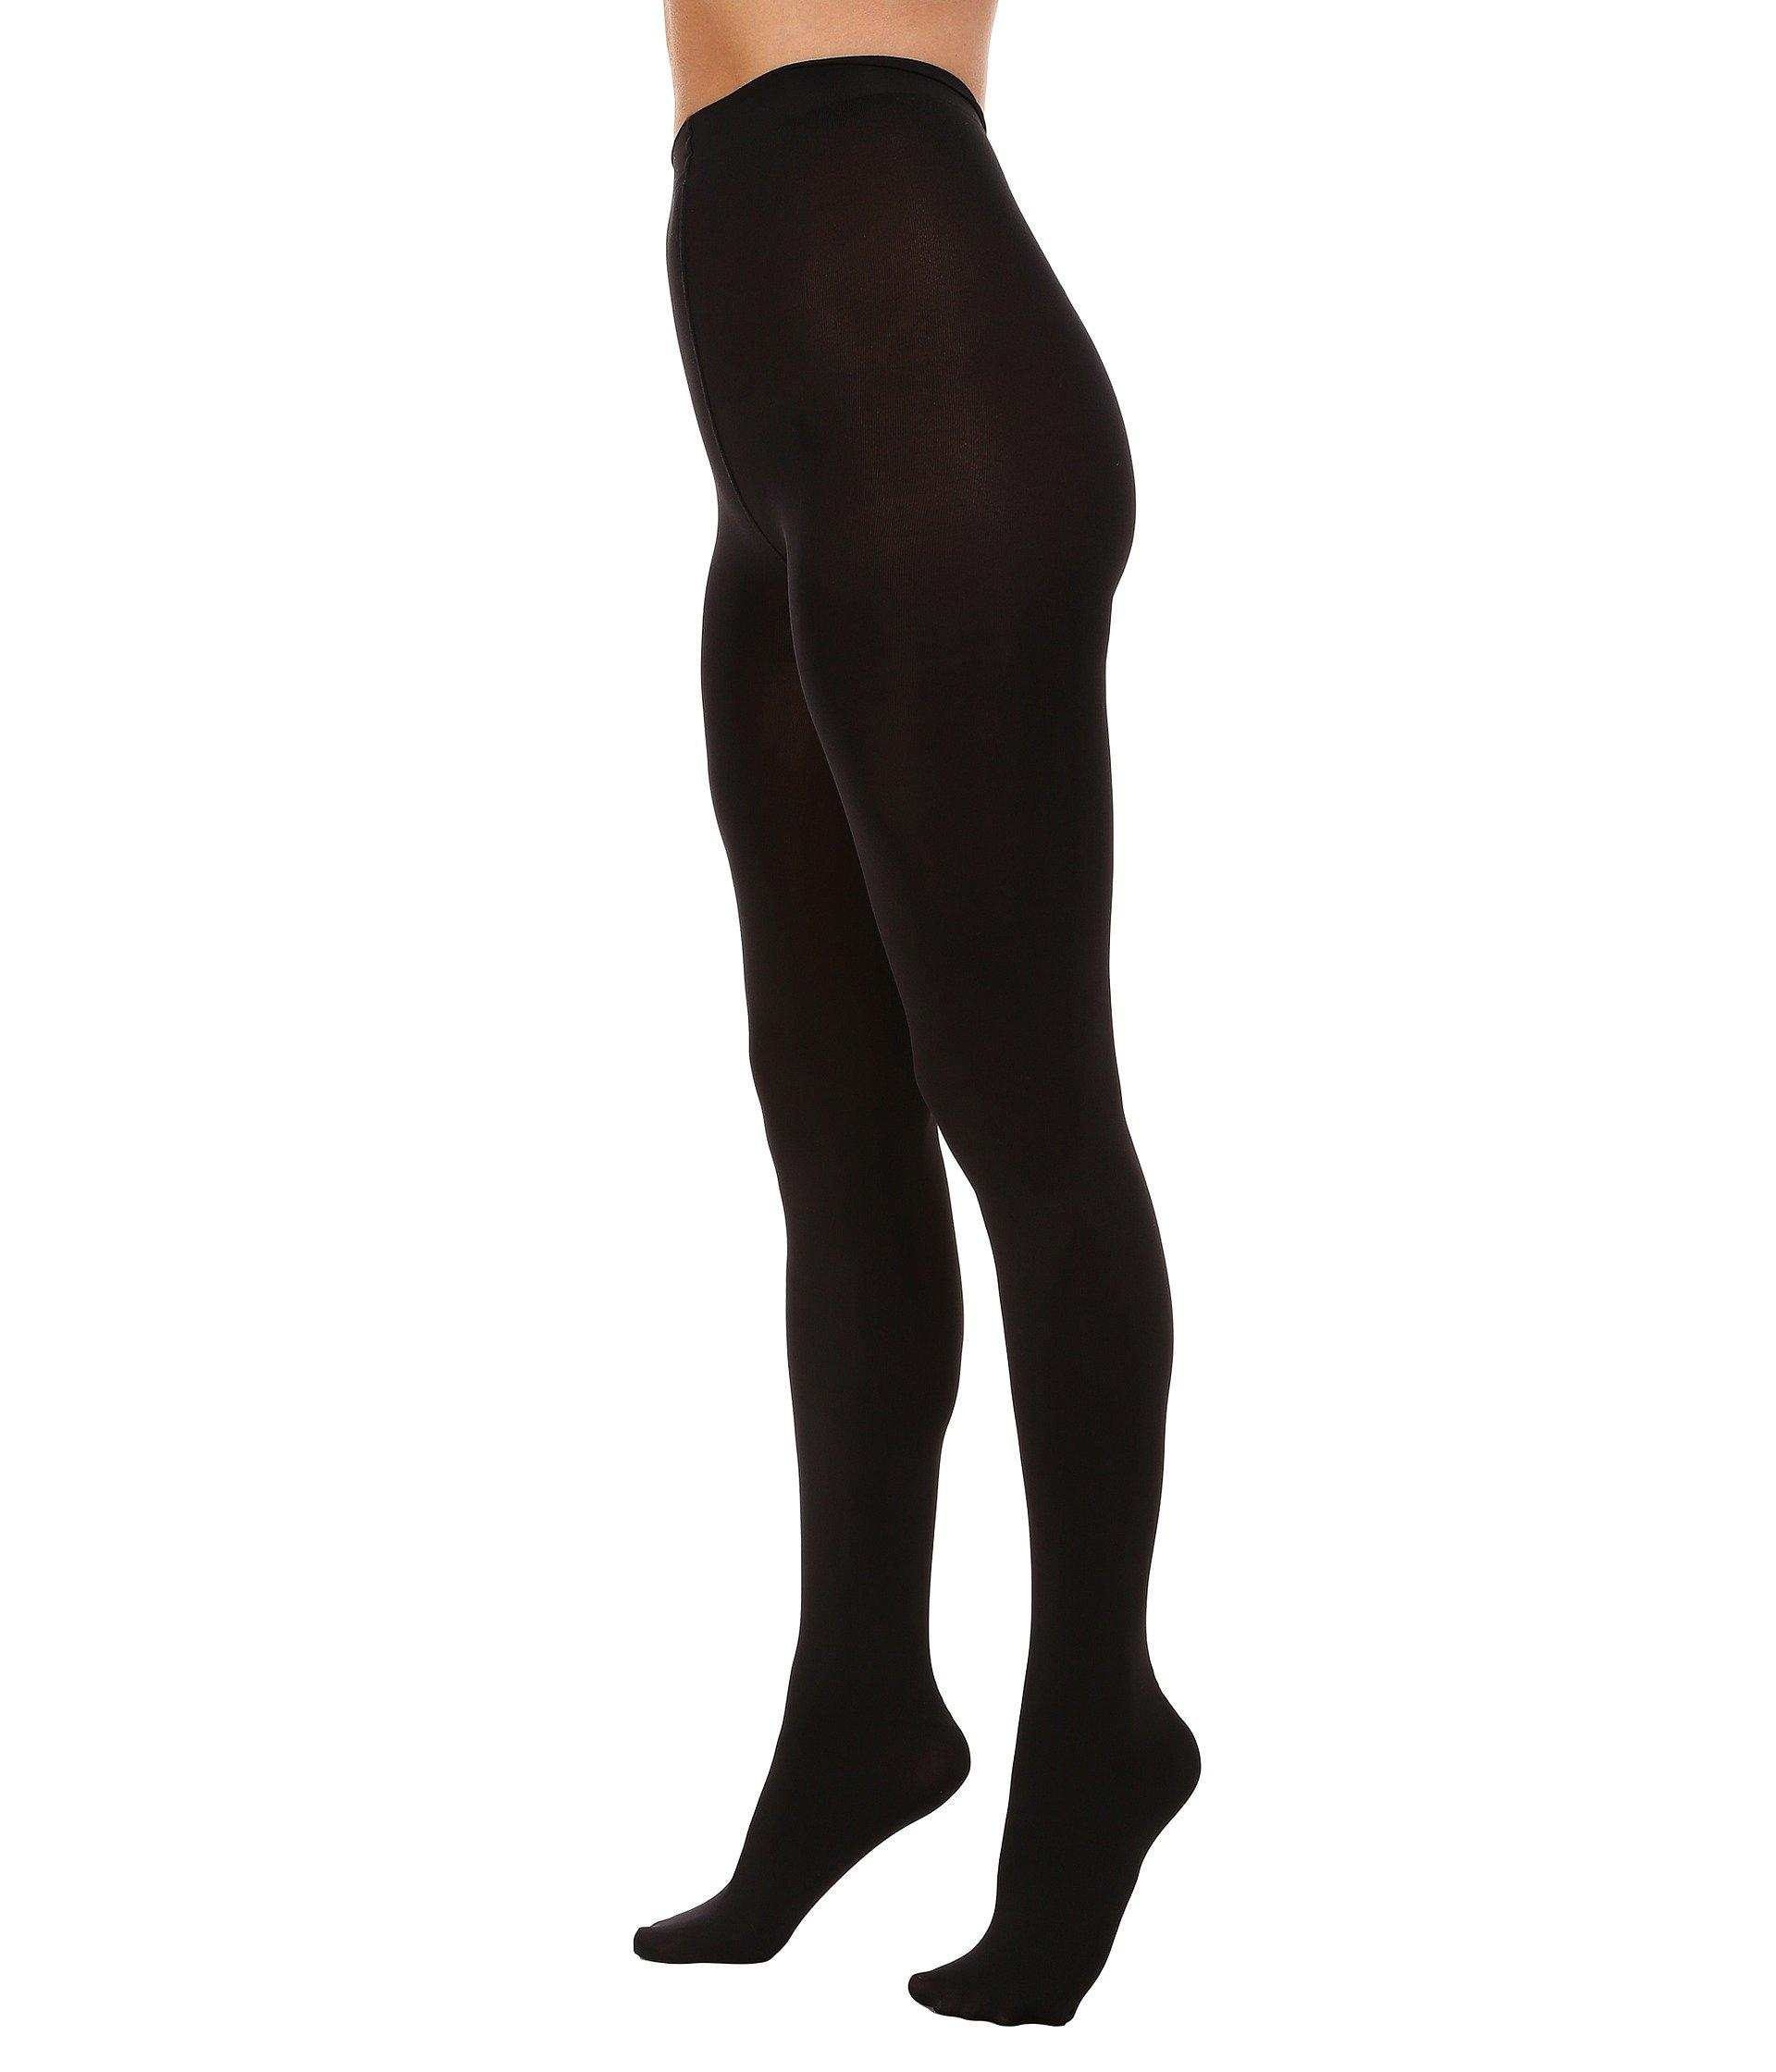 9e07ea7ee32 Lyst - Hue Heat Temp Tights 2-pack (graphite Heather black) Hose in Black -  Save 77%